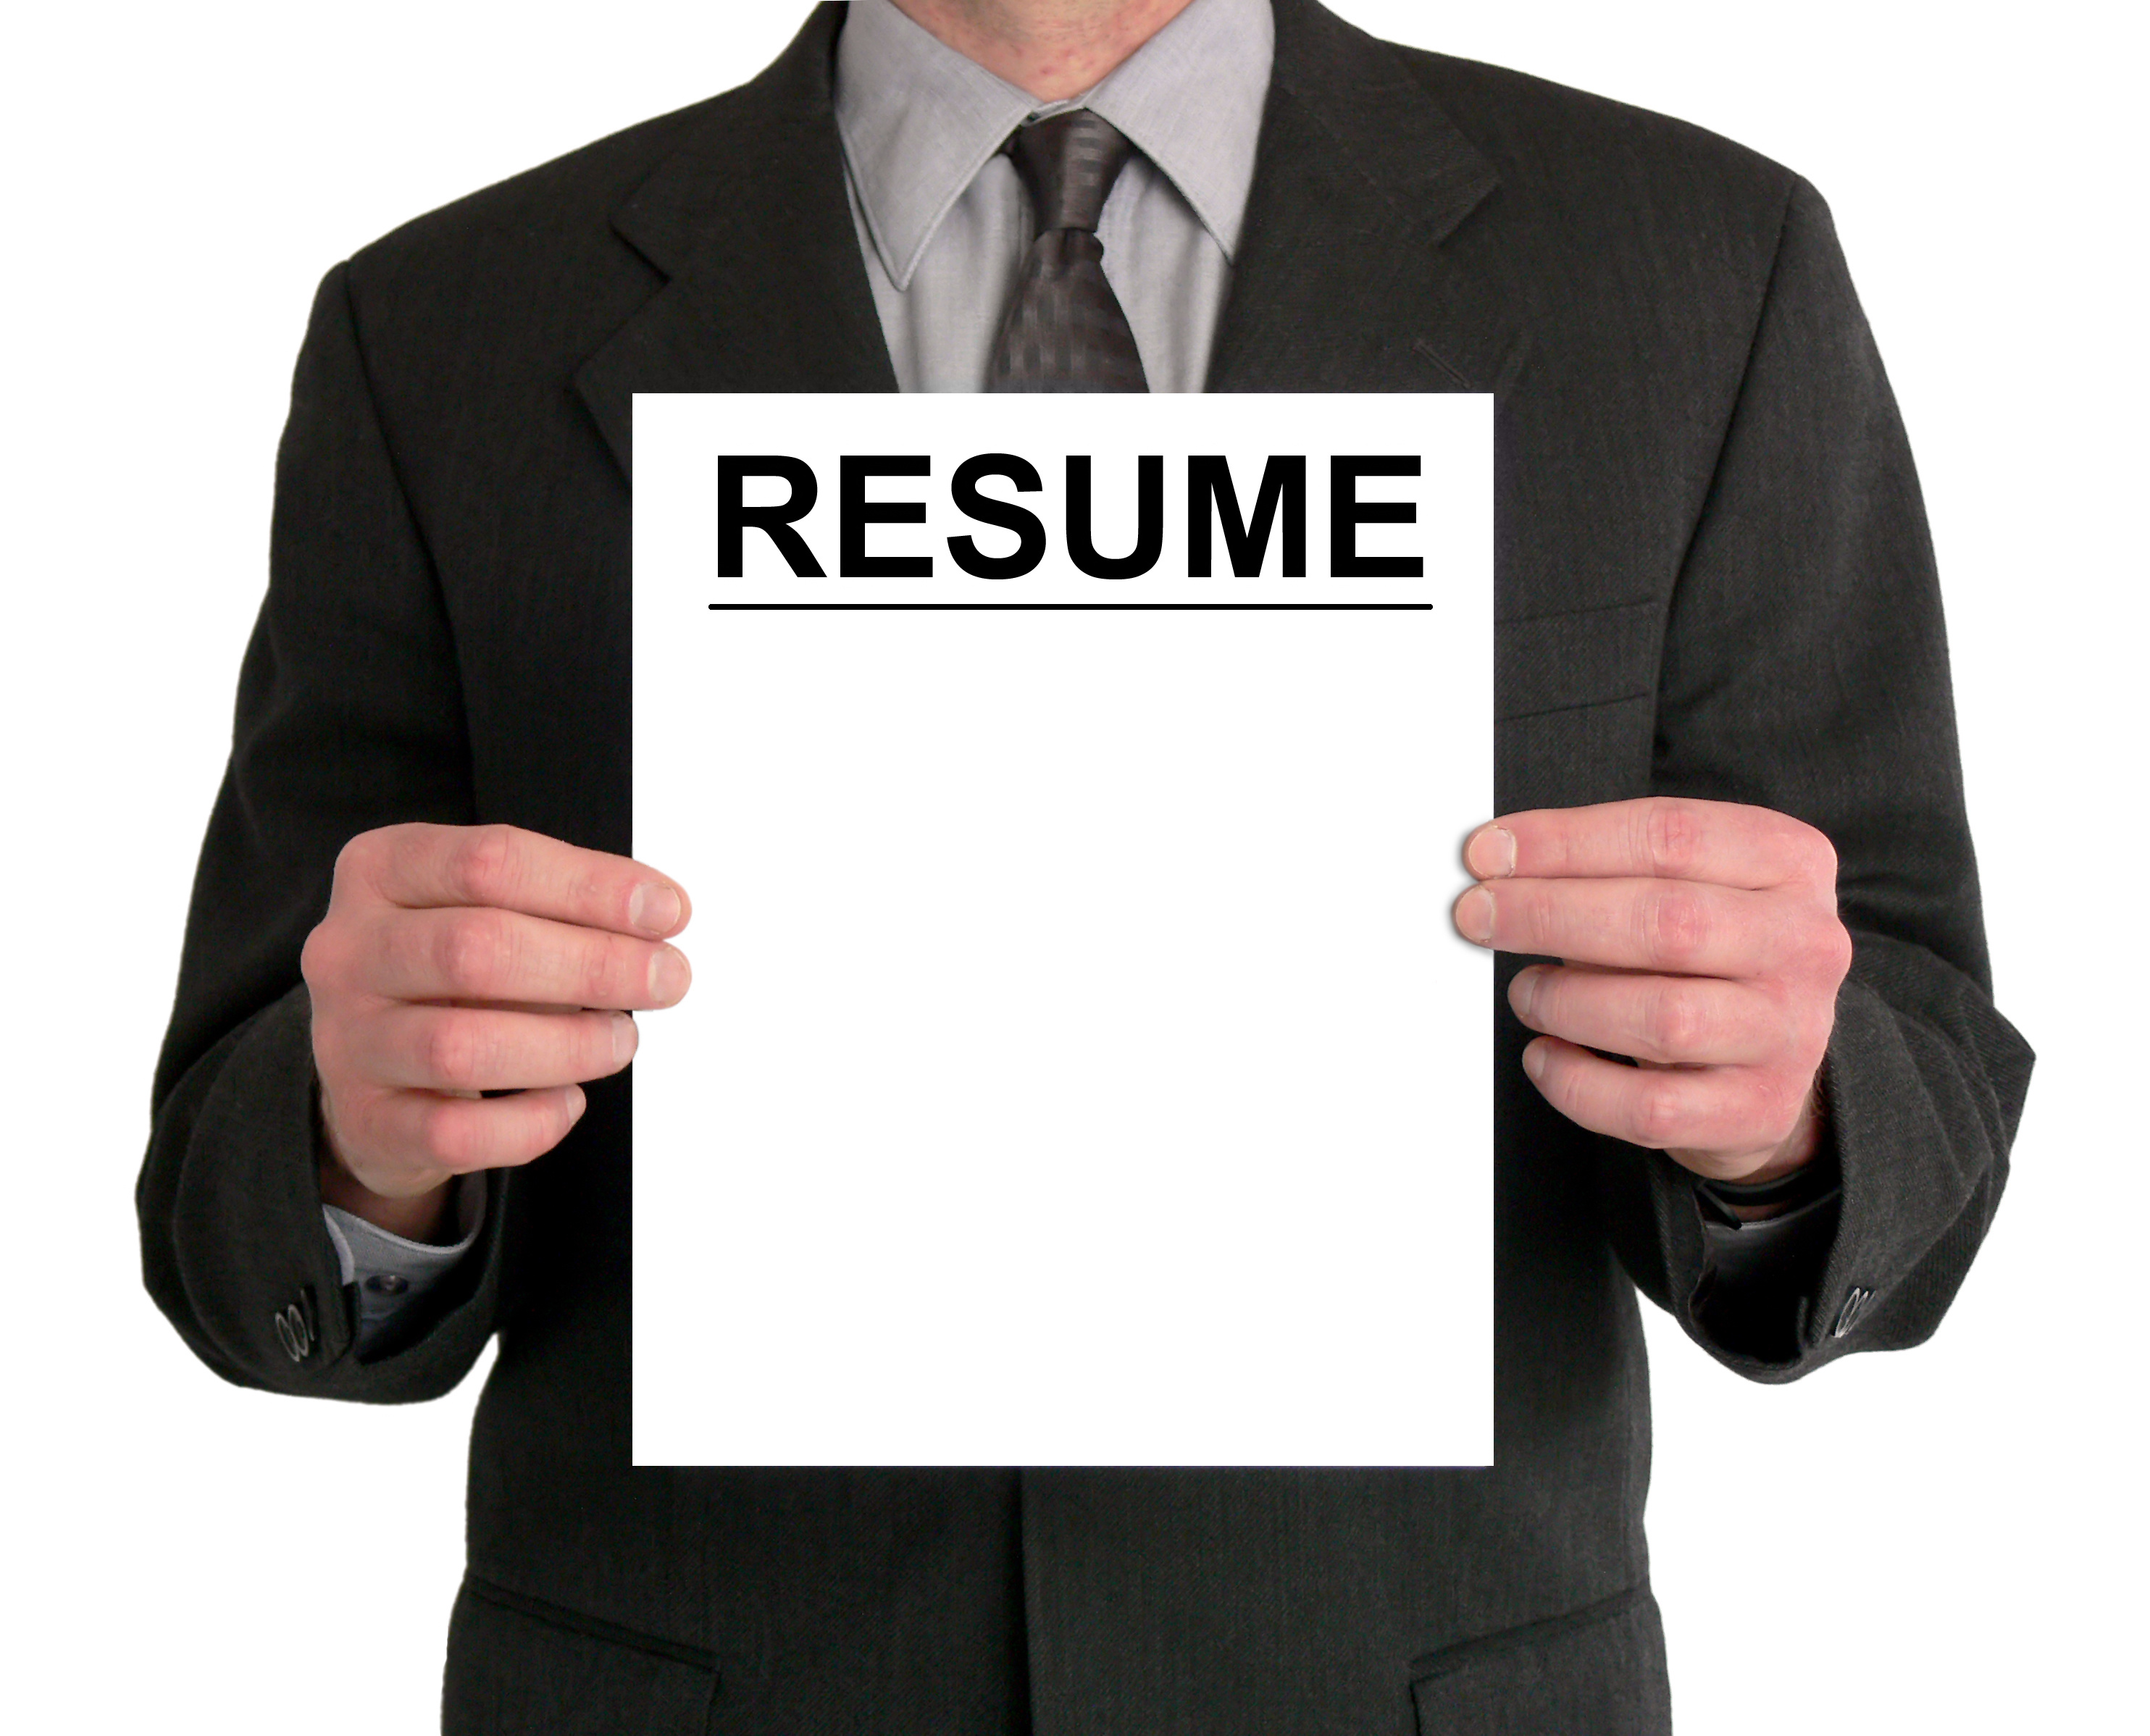 9 ways to proofread your resume